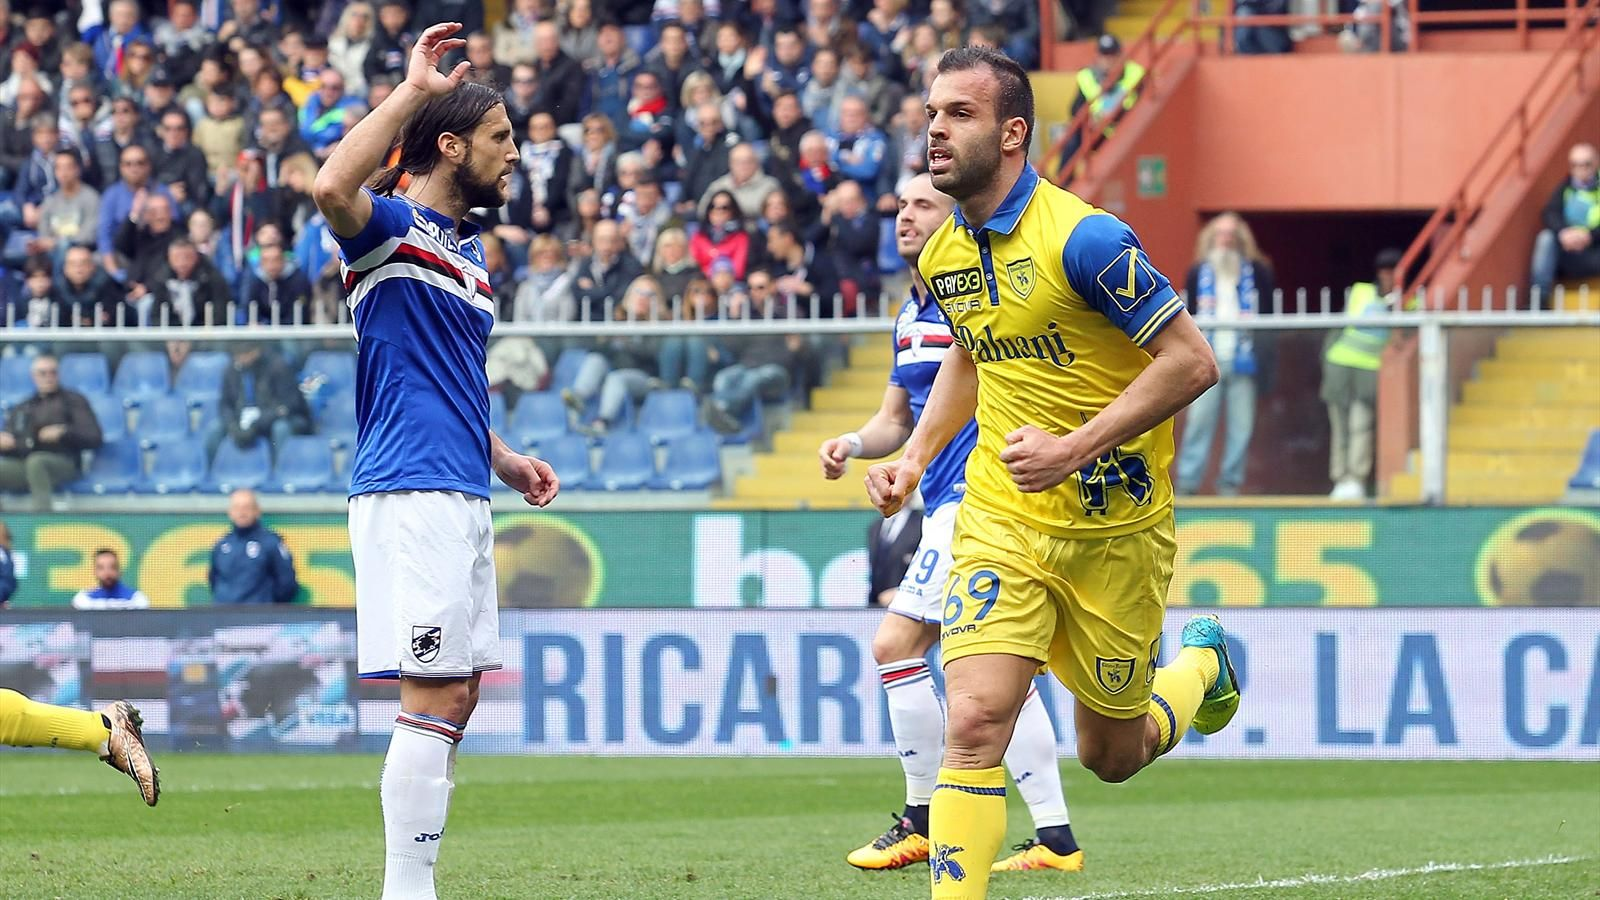 chievo-sampdoria - photo #36